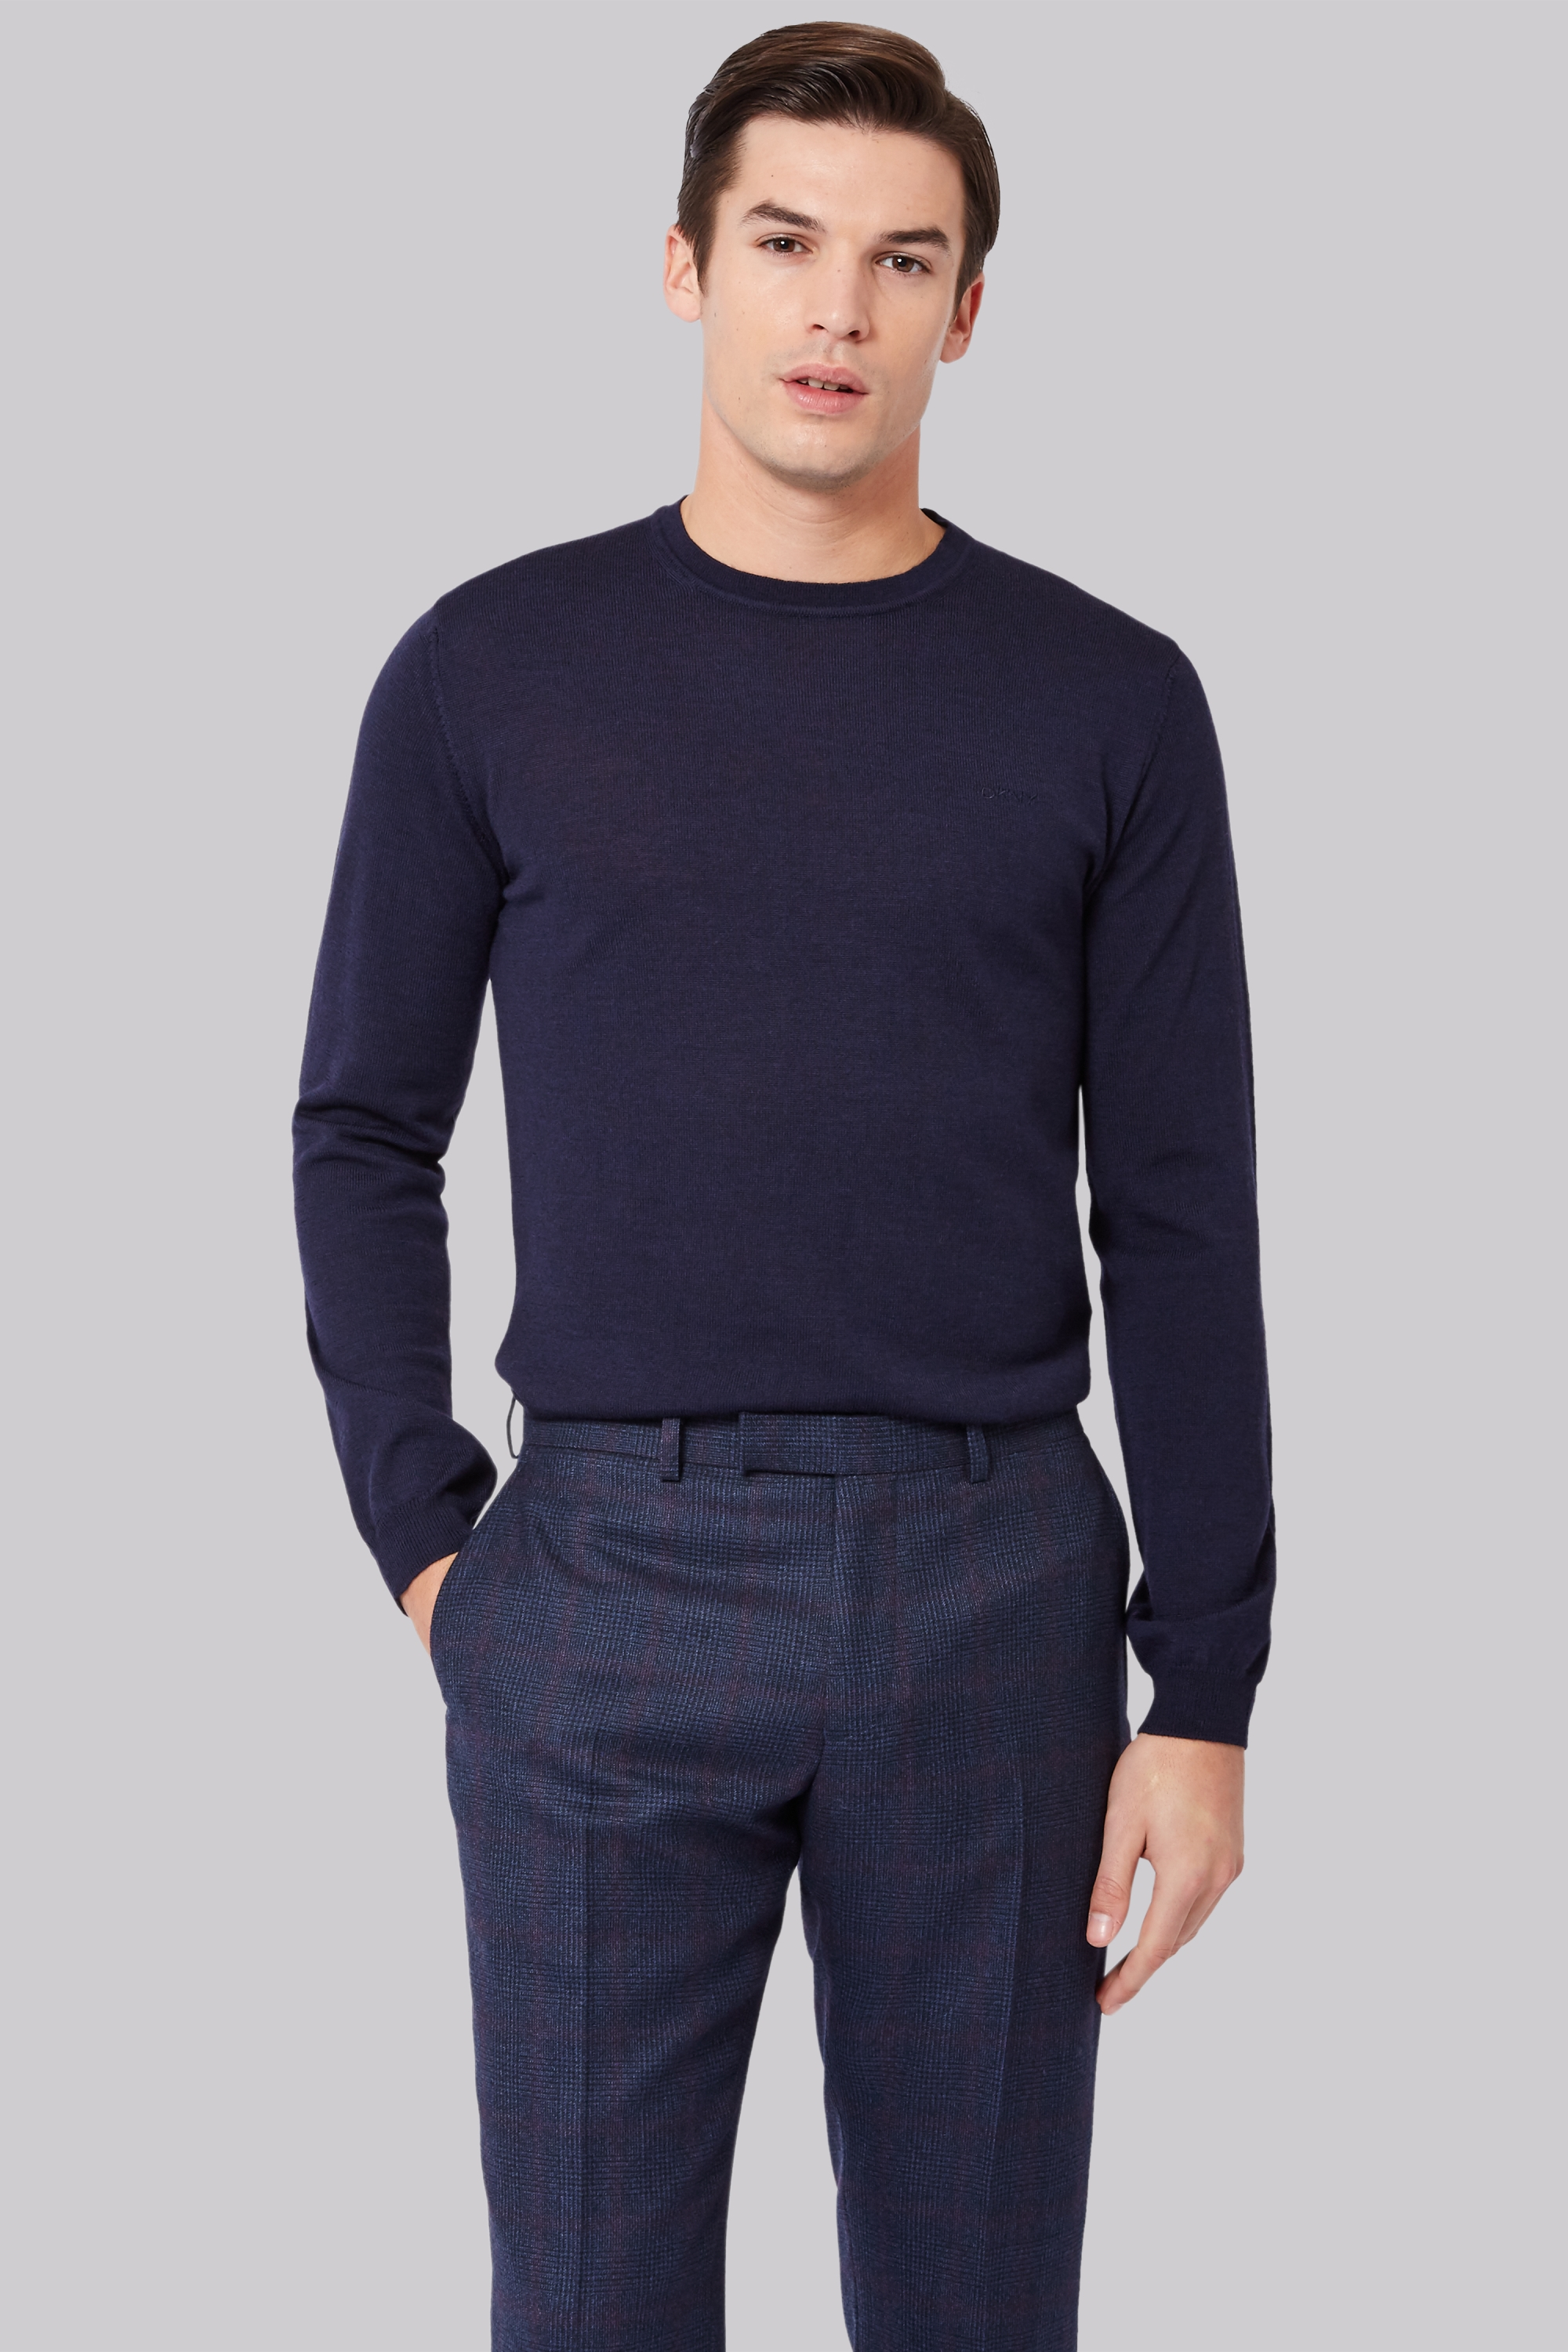 DKNY Slim Fit Navy Merino Wool Crew Neck Jumper